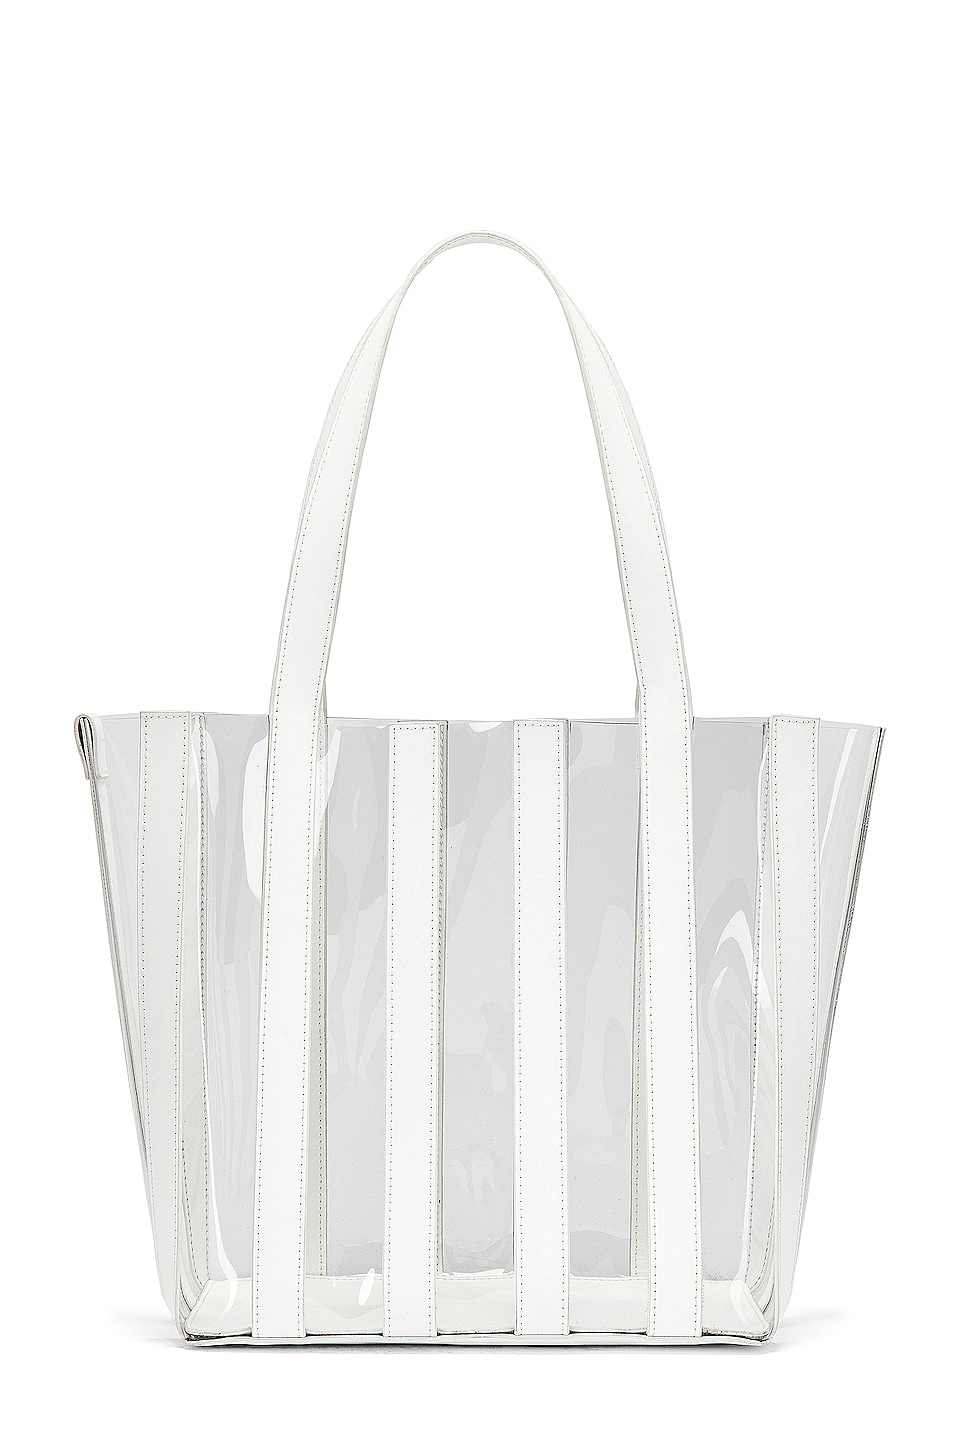 Loeffler Randall Marlena Pieced Tote in White & Clear